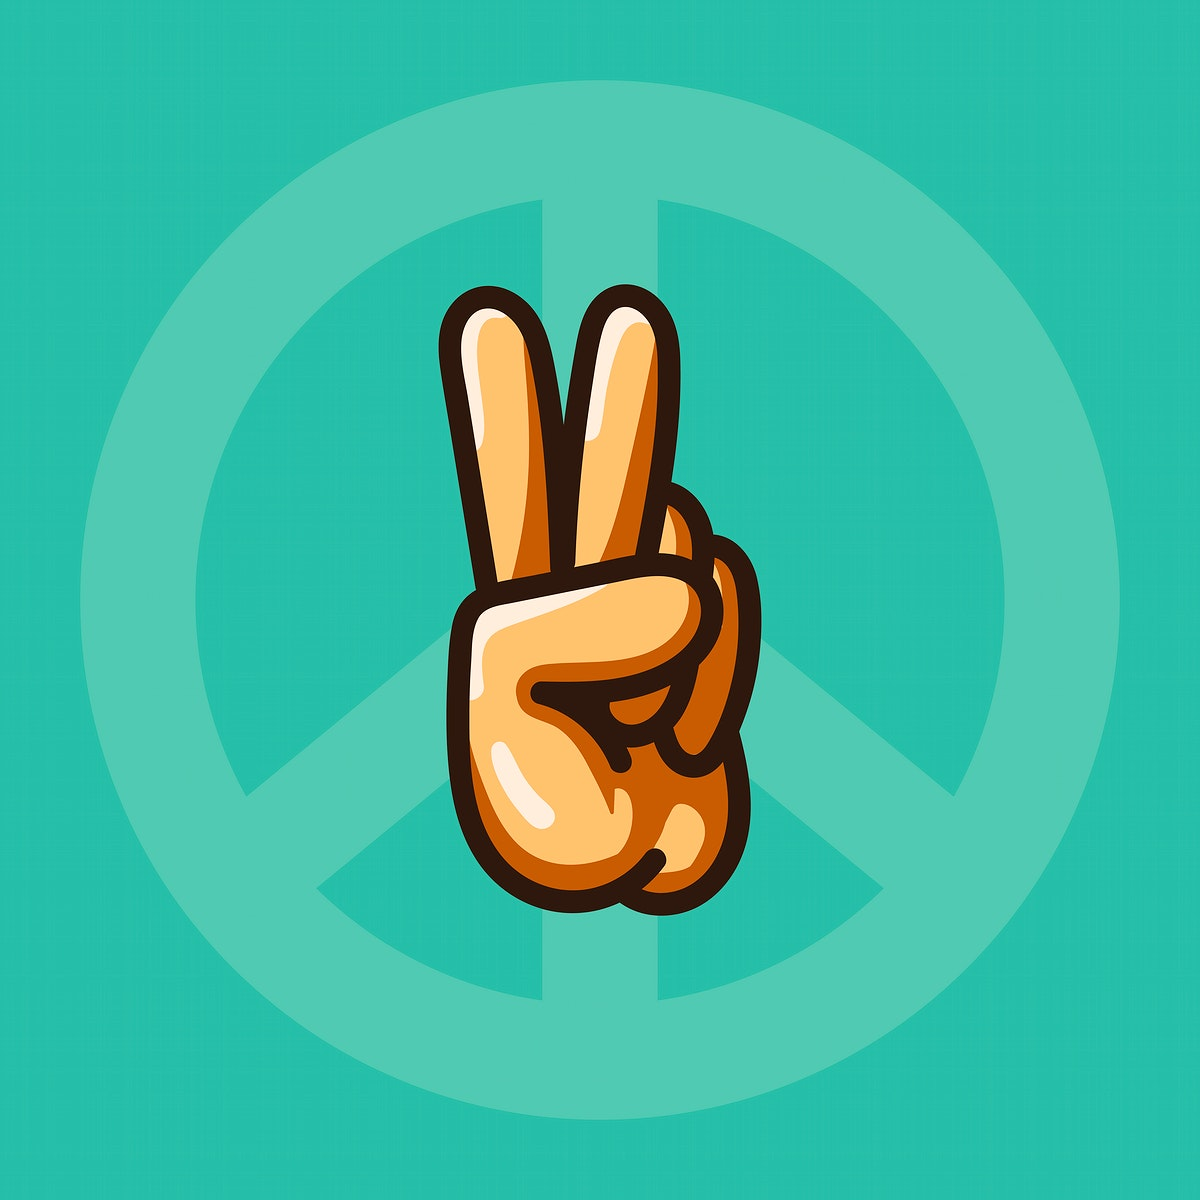 Hand making a peace sign illustration